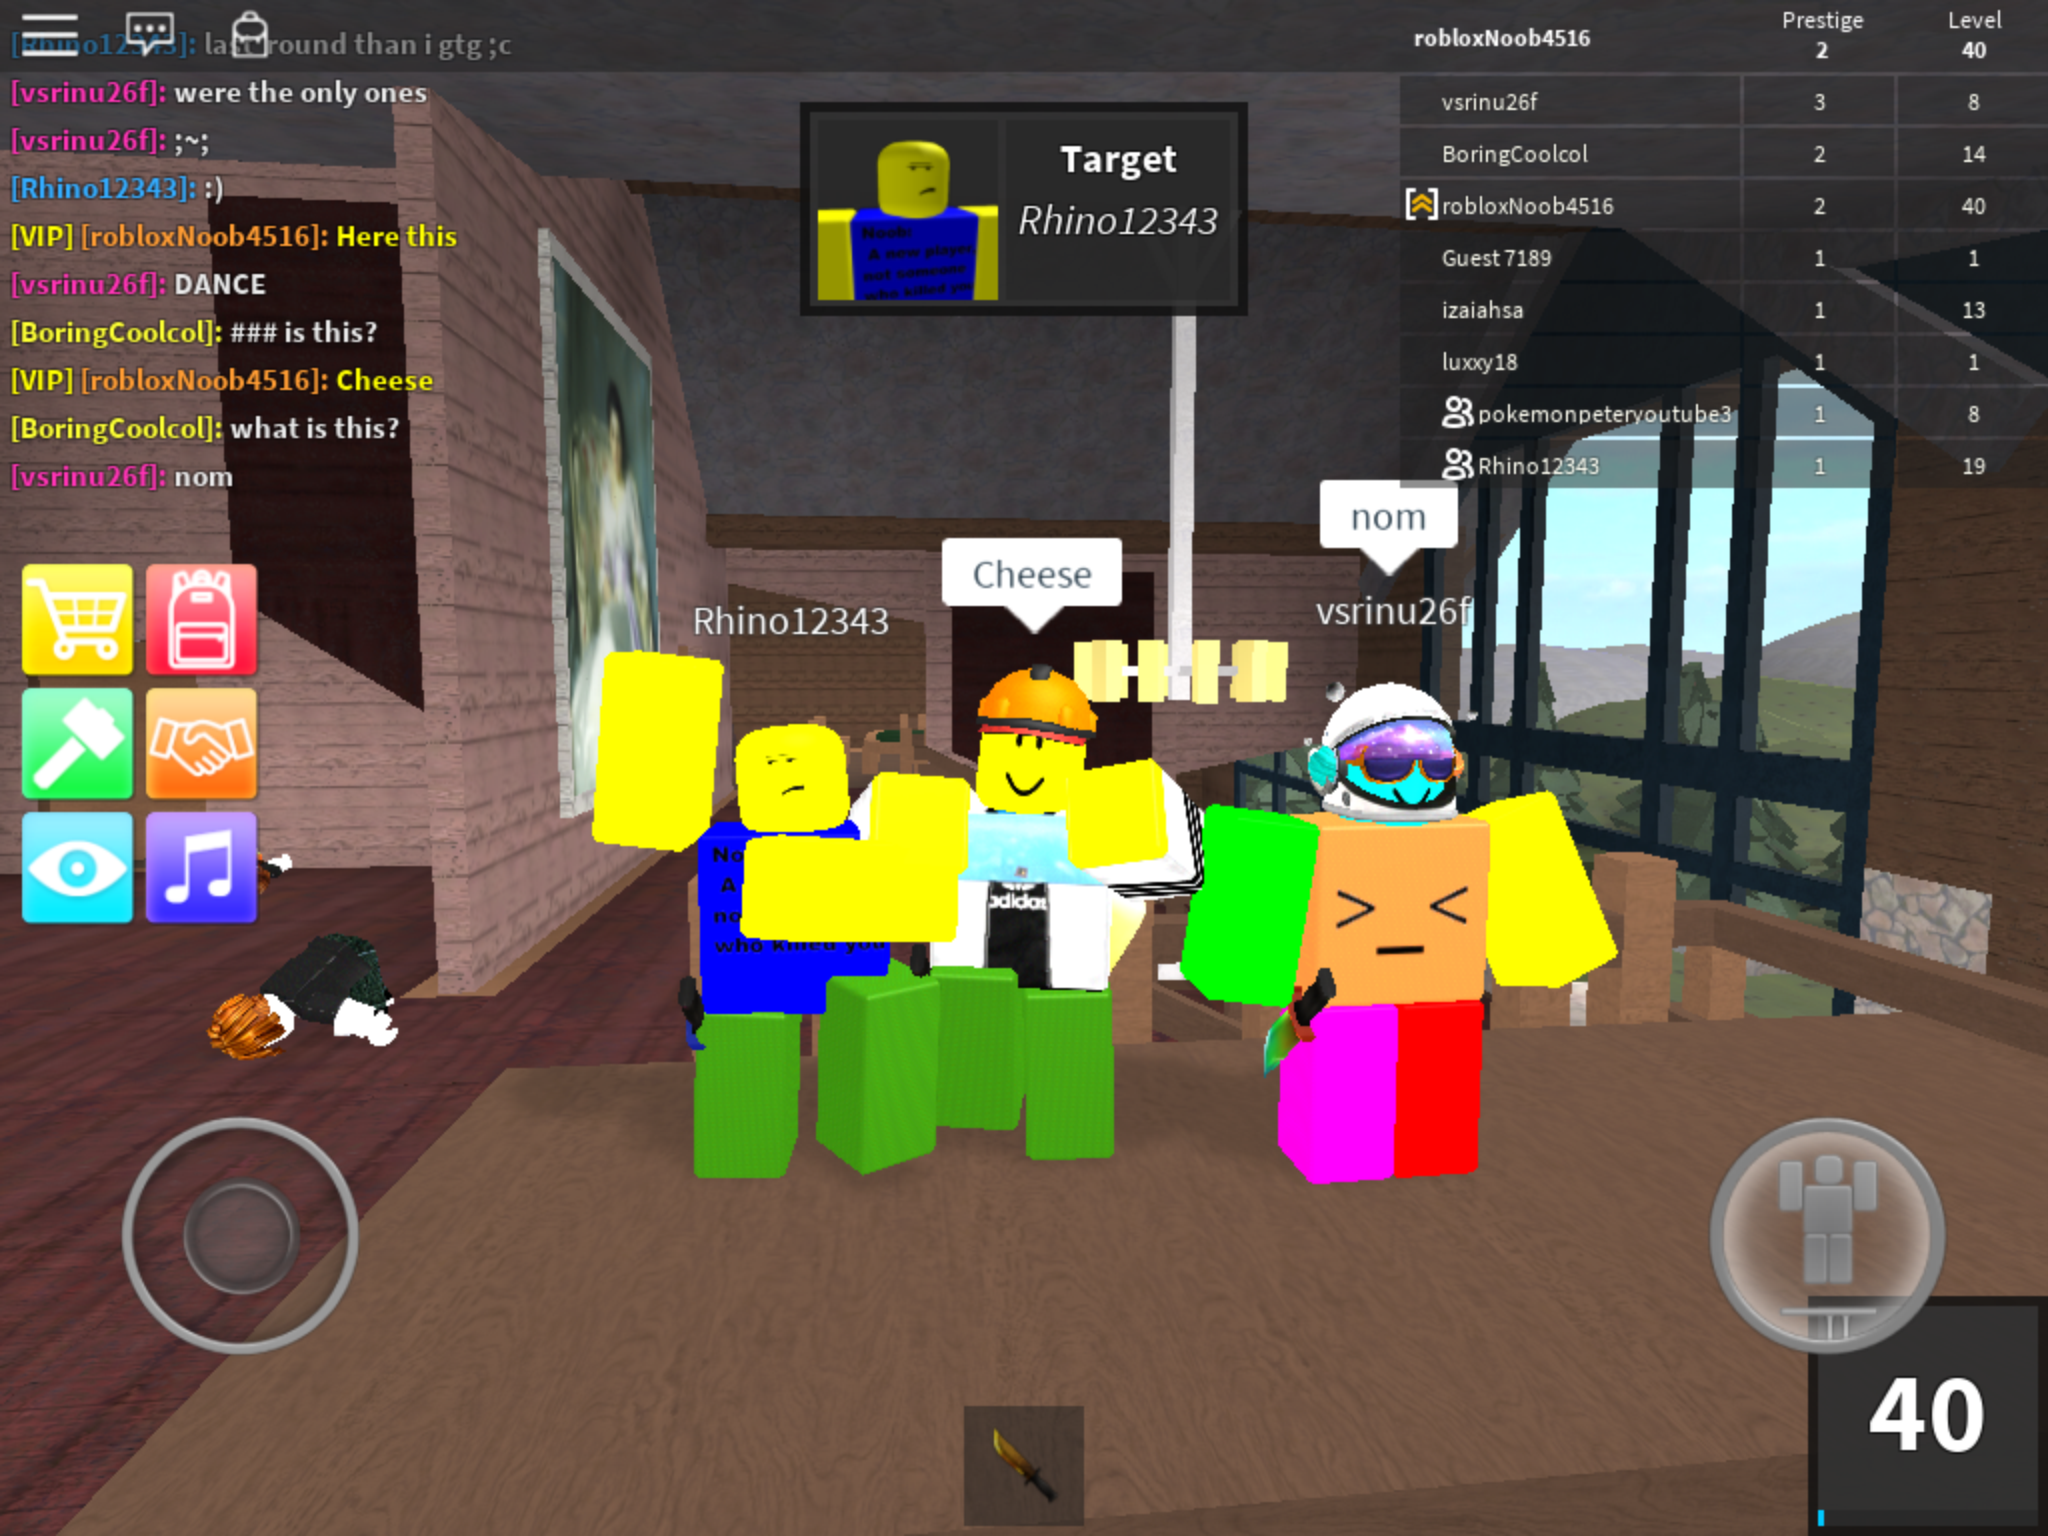 roblox noobs danc how do you play roblox you make friends